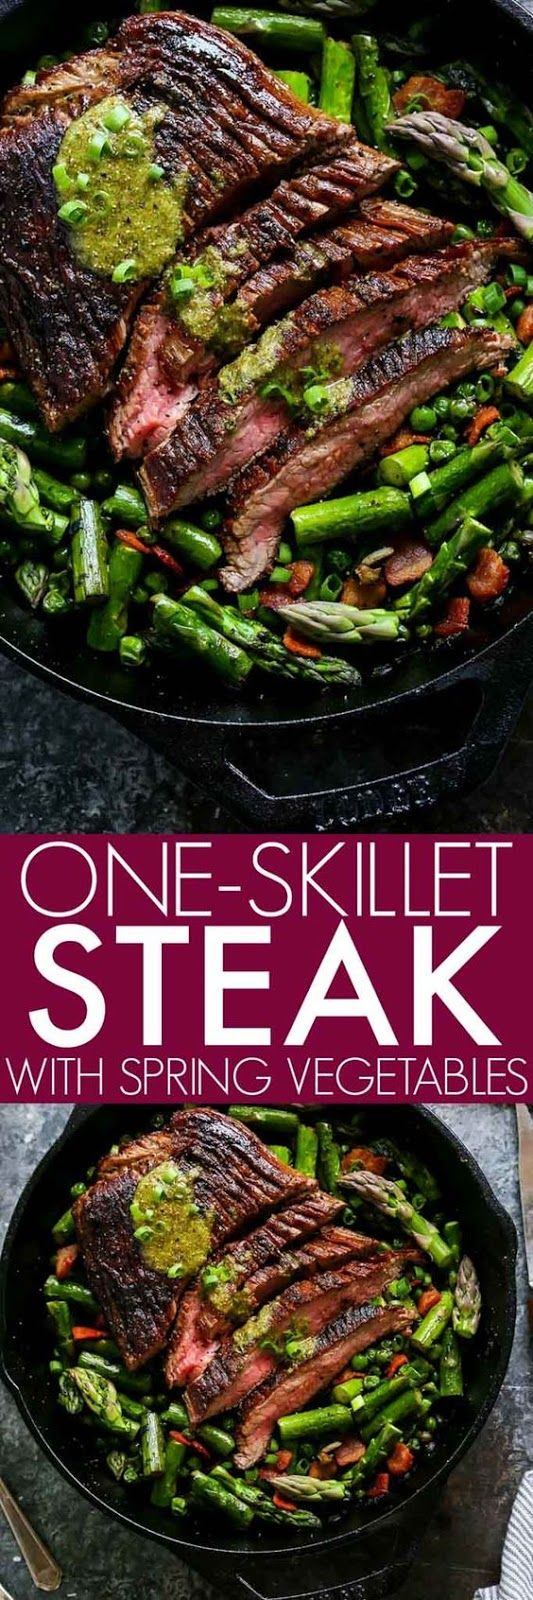 This One-Skillet Steak and Spring Vegetables with Mint Mustard Sauce is an elegant dinner that's easy enough for weekday entertaining. Steak, peas and asparagus cook up together in just one pan! #oneskillet #steak #vegetables #mustardsauce #easyskilletsteak #springvegetablesrecipes #howtocook #tutorialcooking